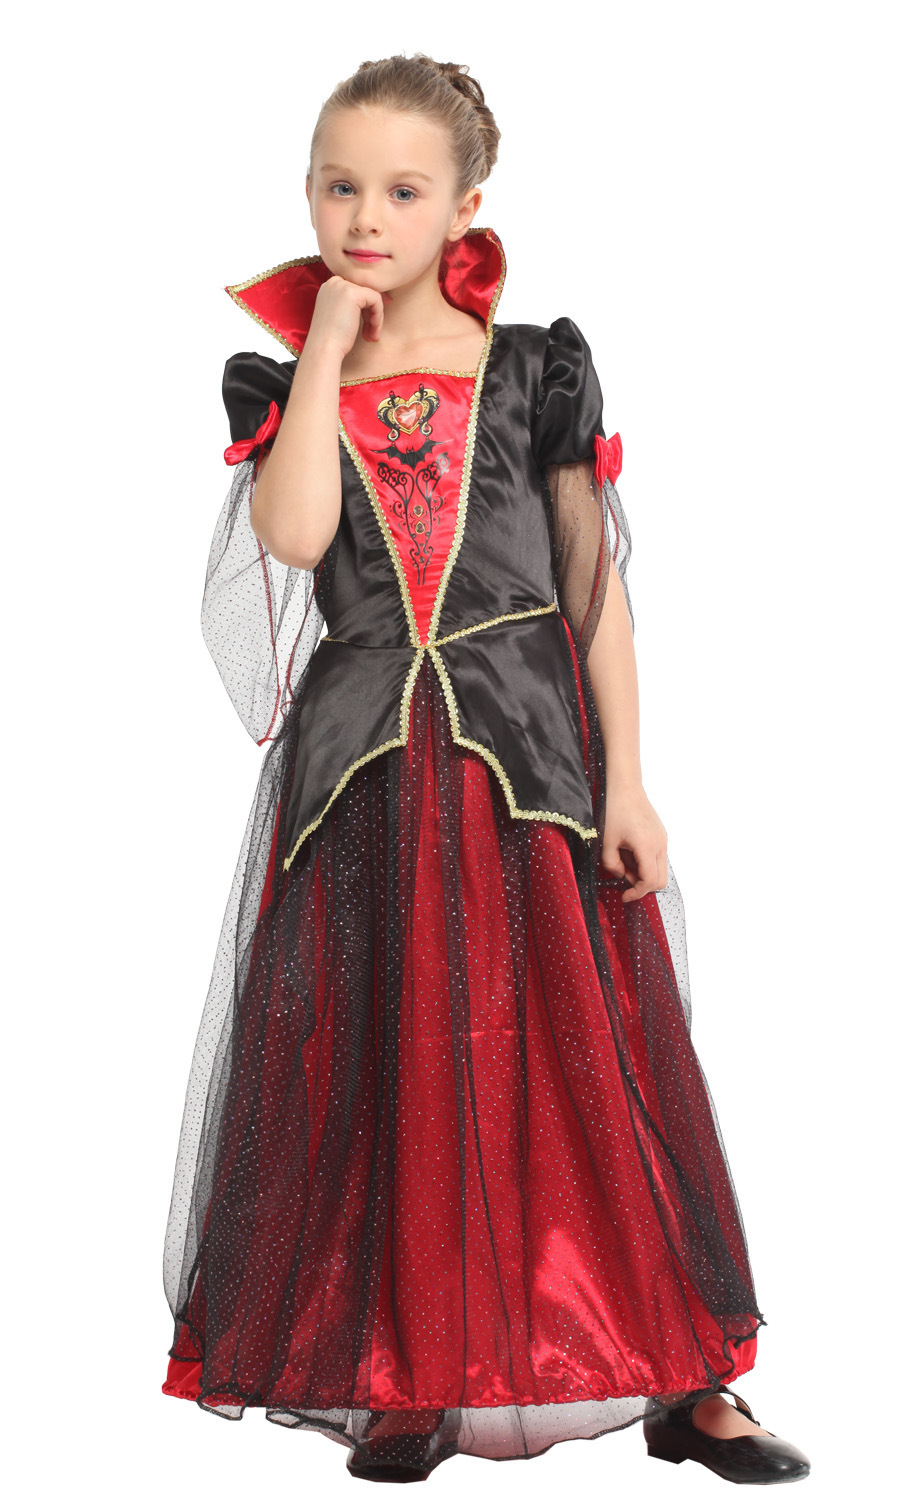 new year halloween costume for kids vampire witch anime cosplay costumes carnaval christmas girl children child boys fancy dress 4